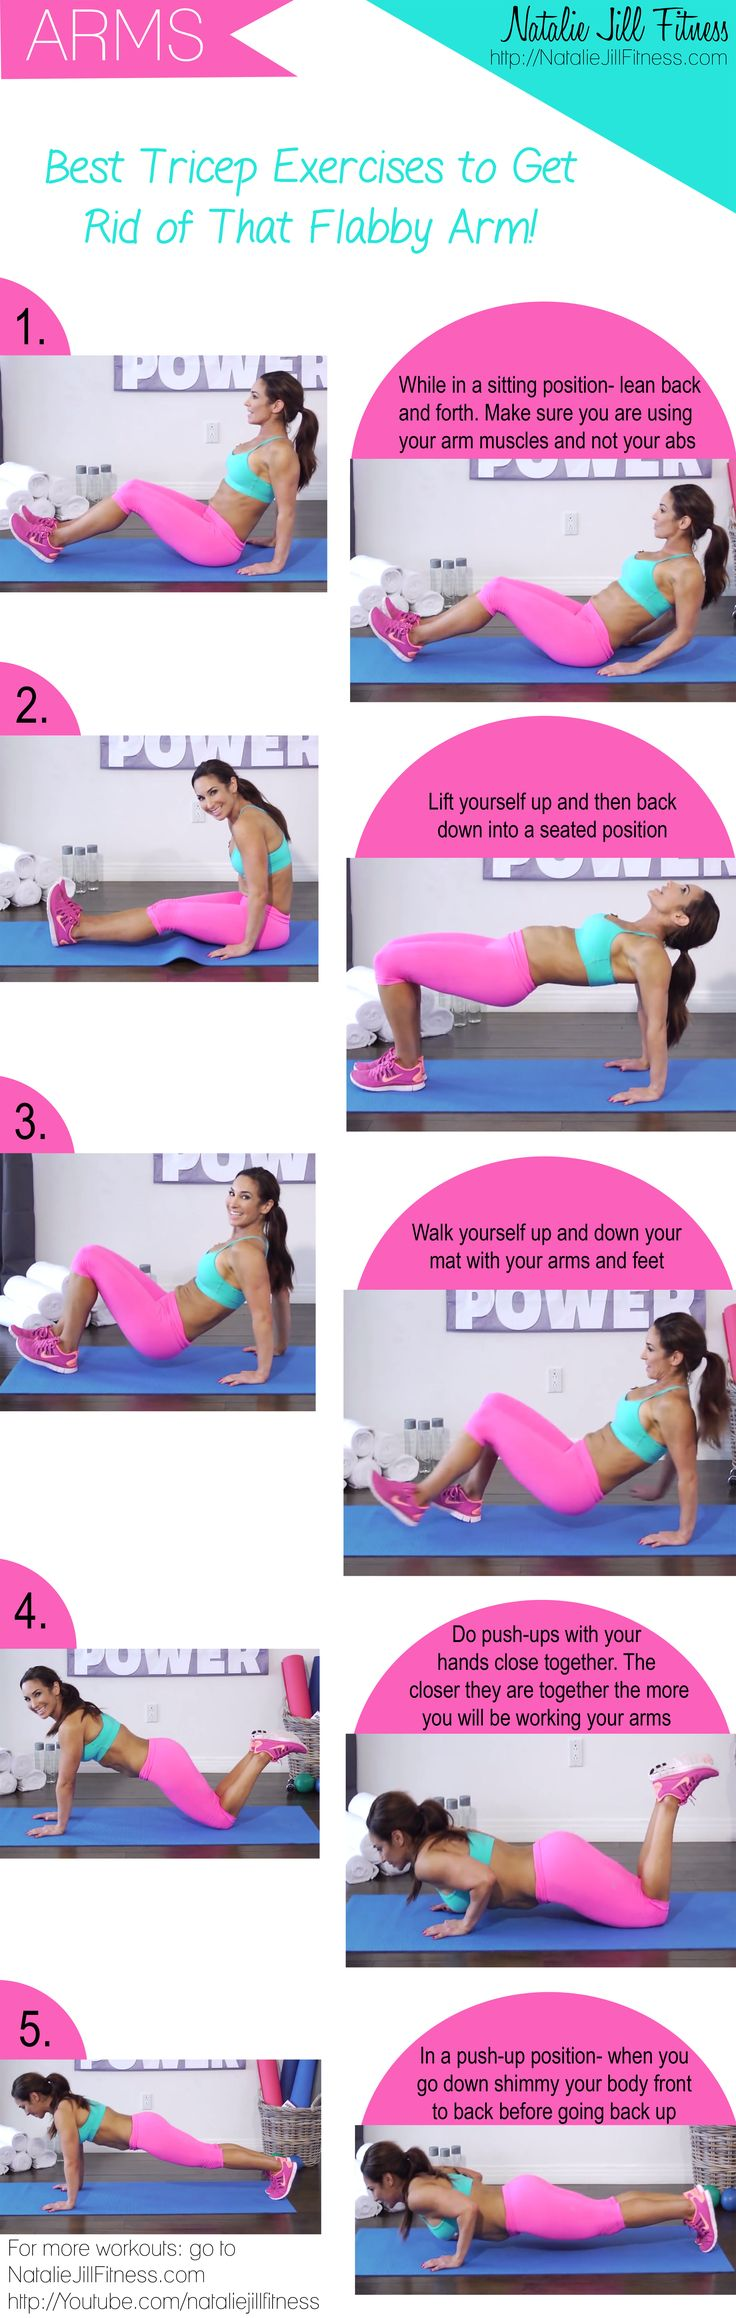 """BEST exercises to get rid of the """"flappy arm!"""" Tricep workout! Click the image to view the video that goes with the workout!"""